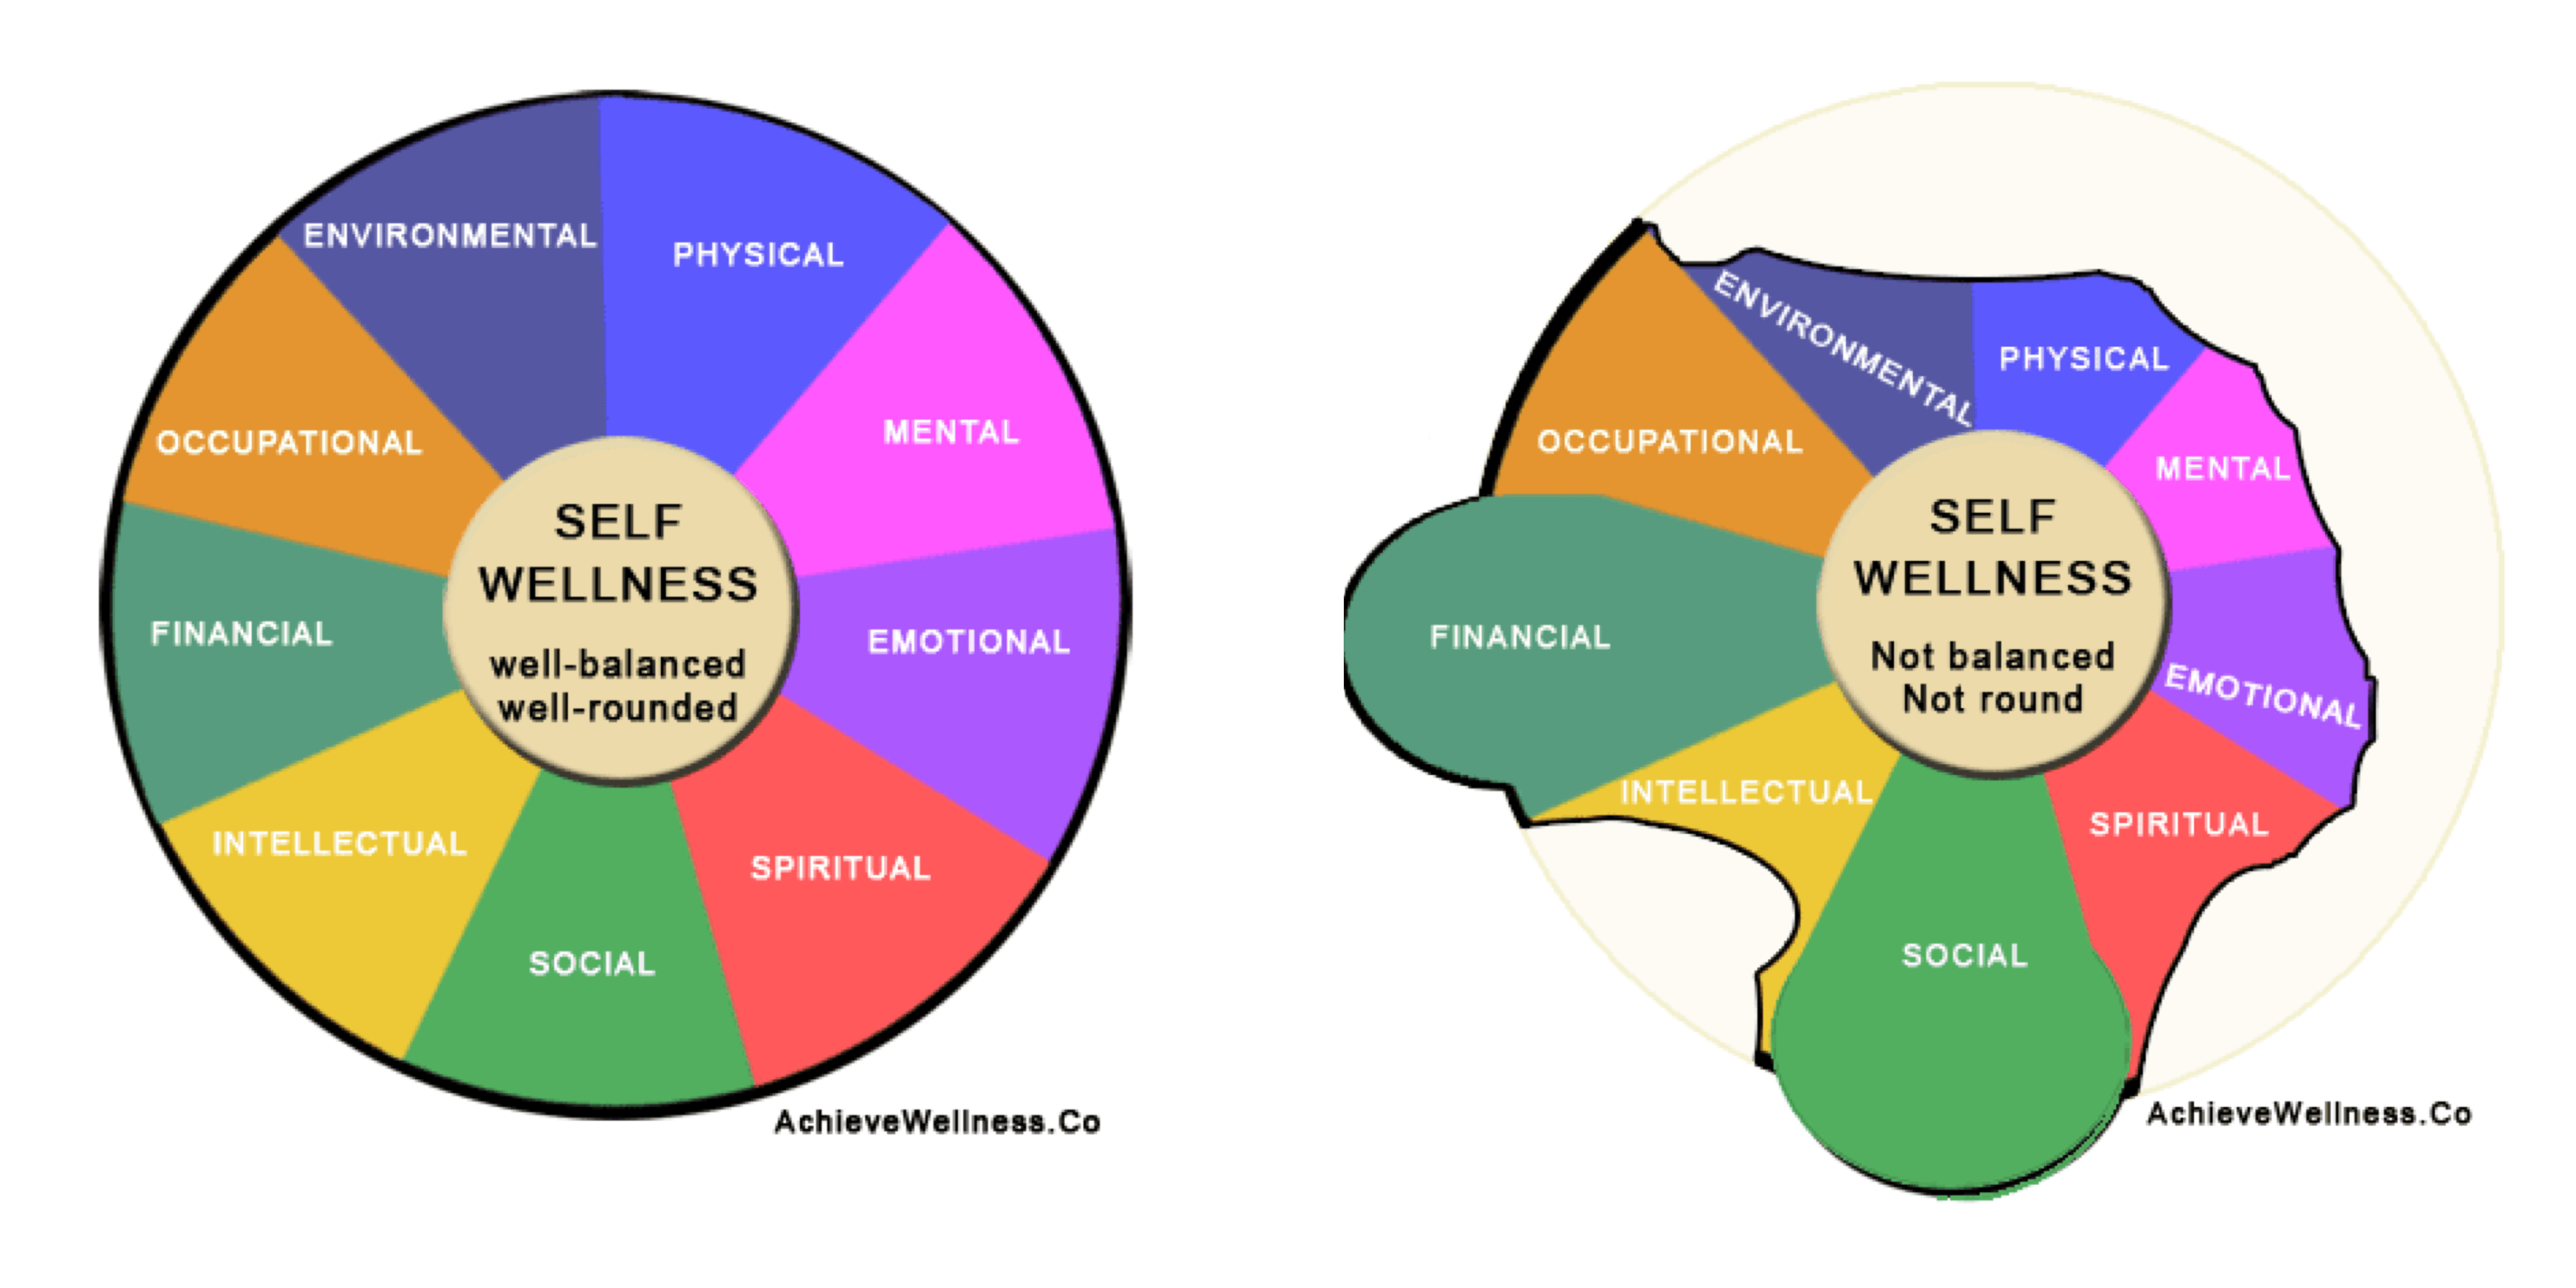 Worksheets. Wellness Wheel Worksheet. waytoohuman Free Worksheets ...